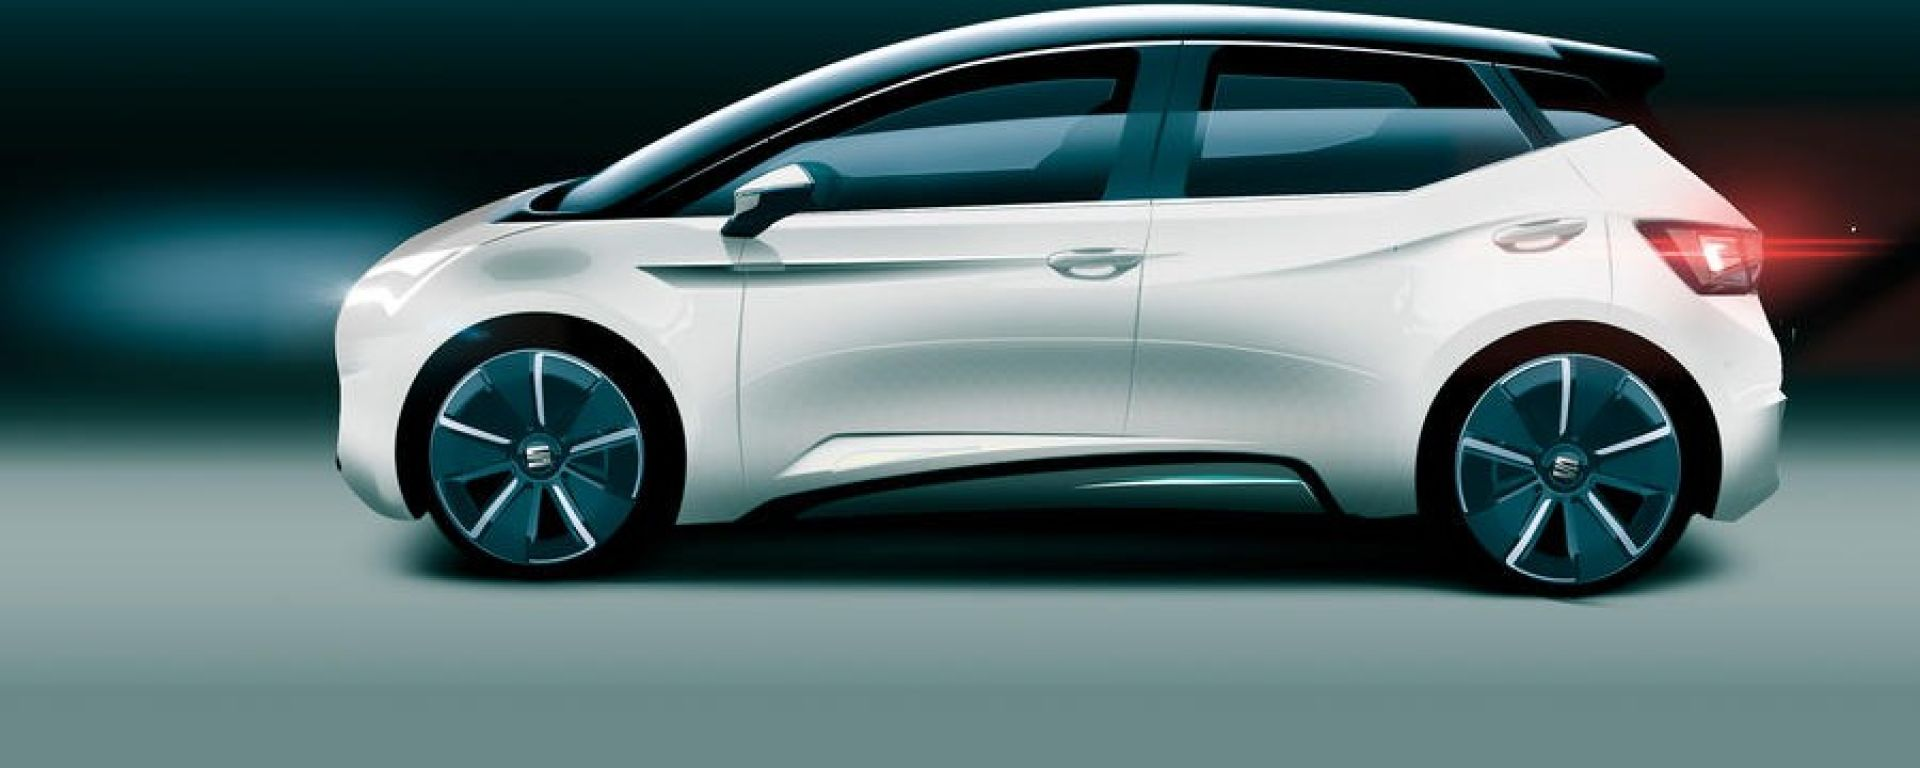 Seat E-Born: un possibile rendering